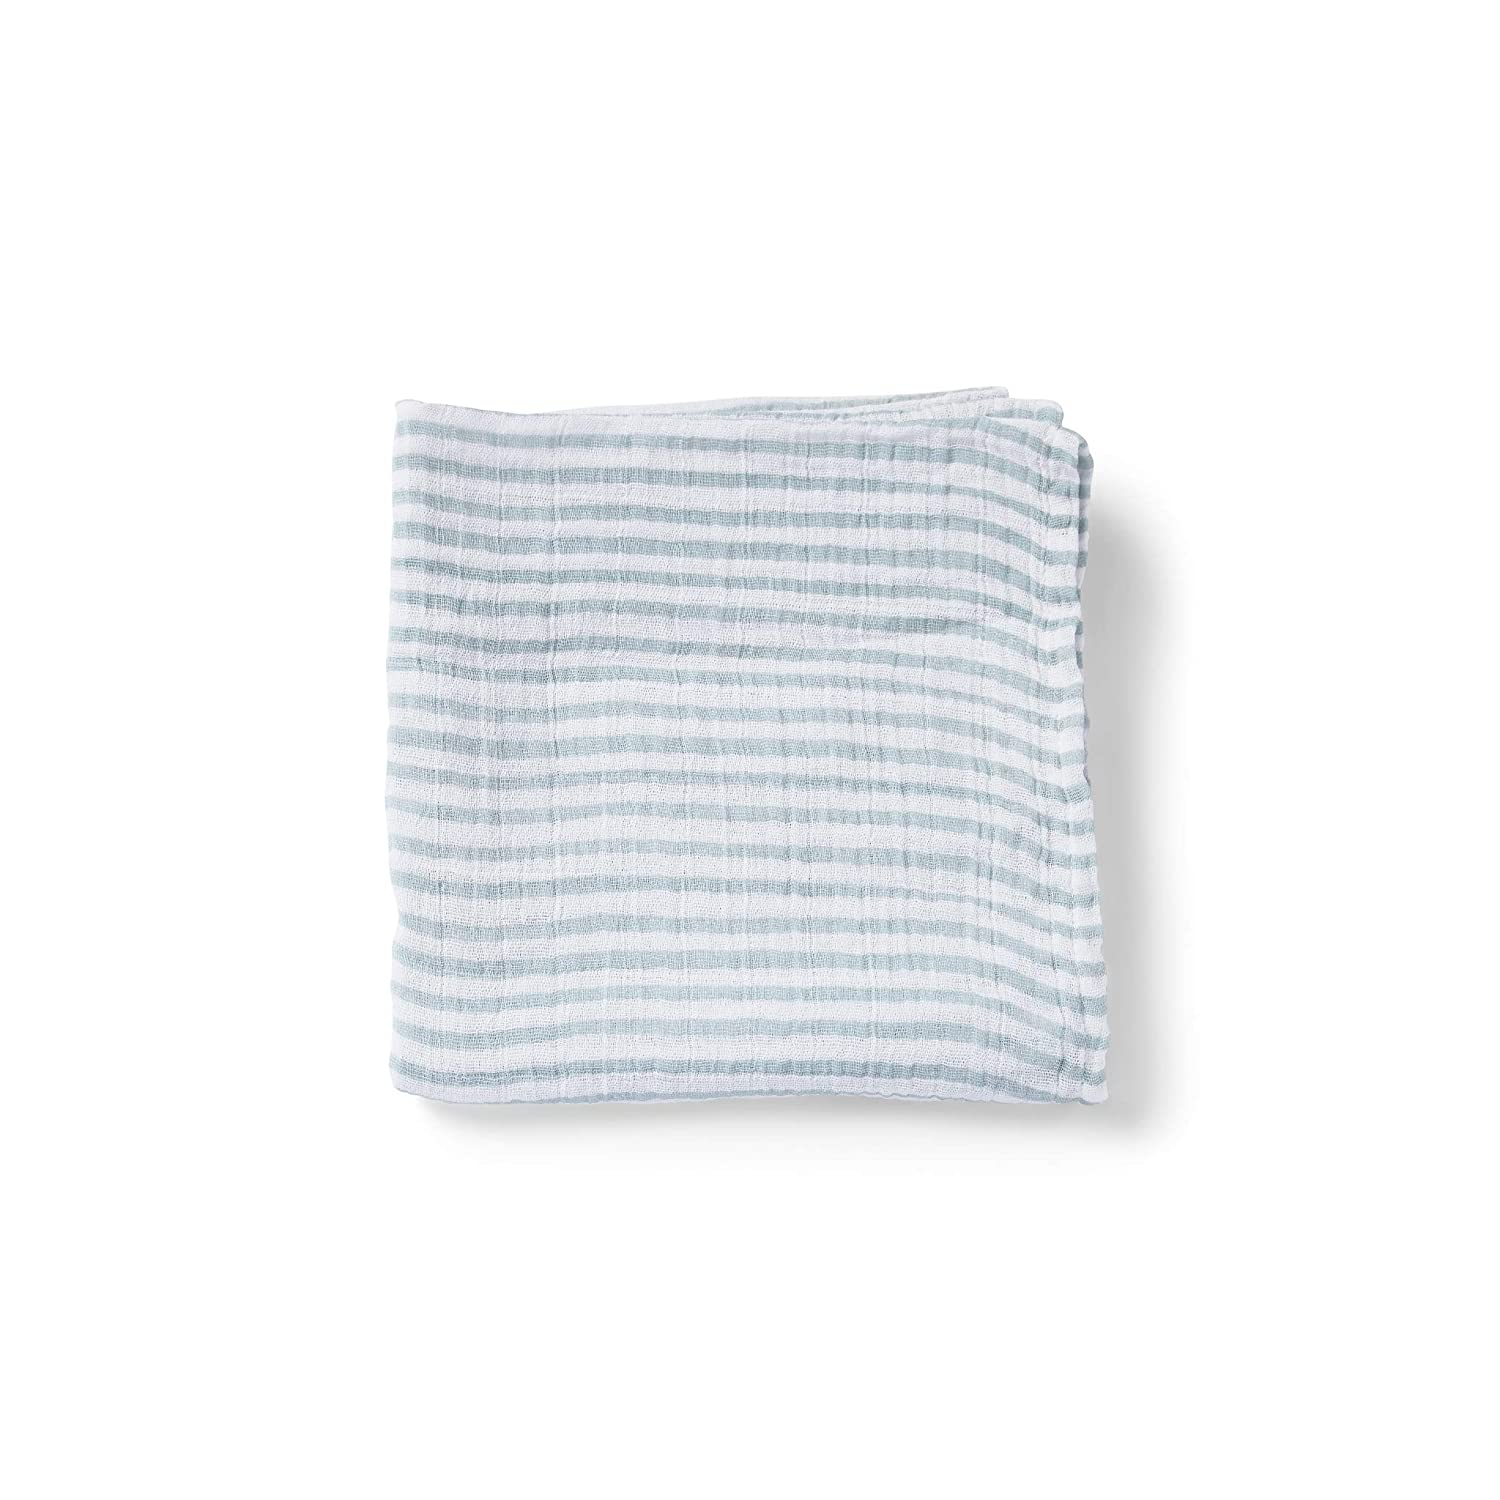 PEHR Stripes Away Sea Muslin Mini, Multi (STPASWSM02)